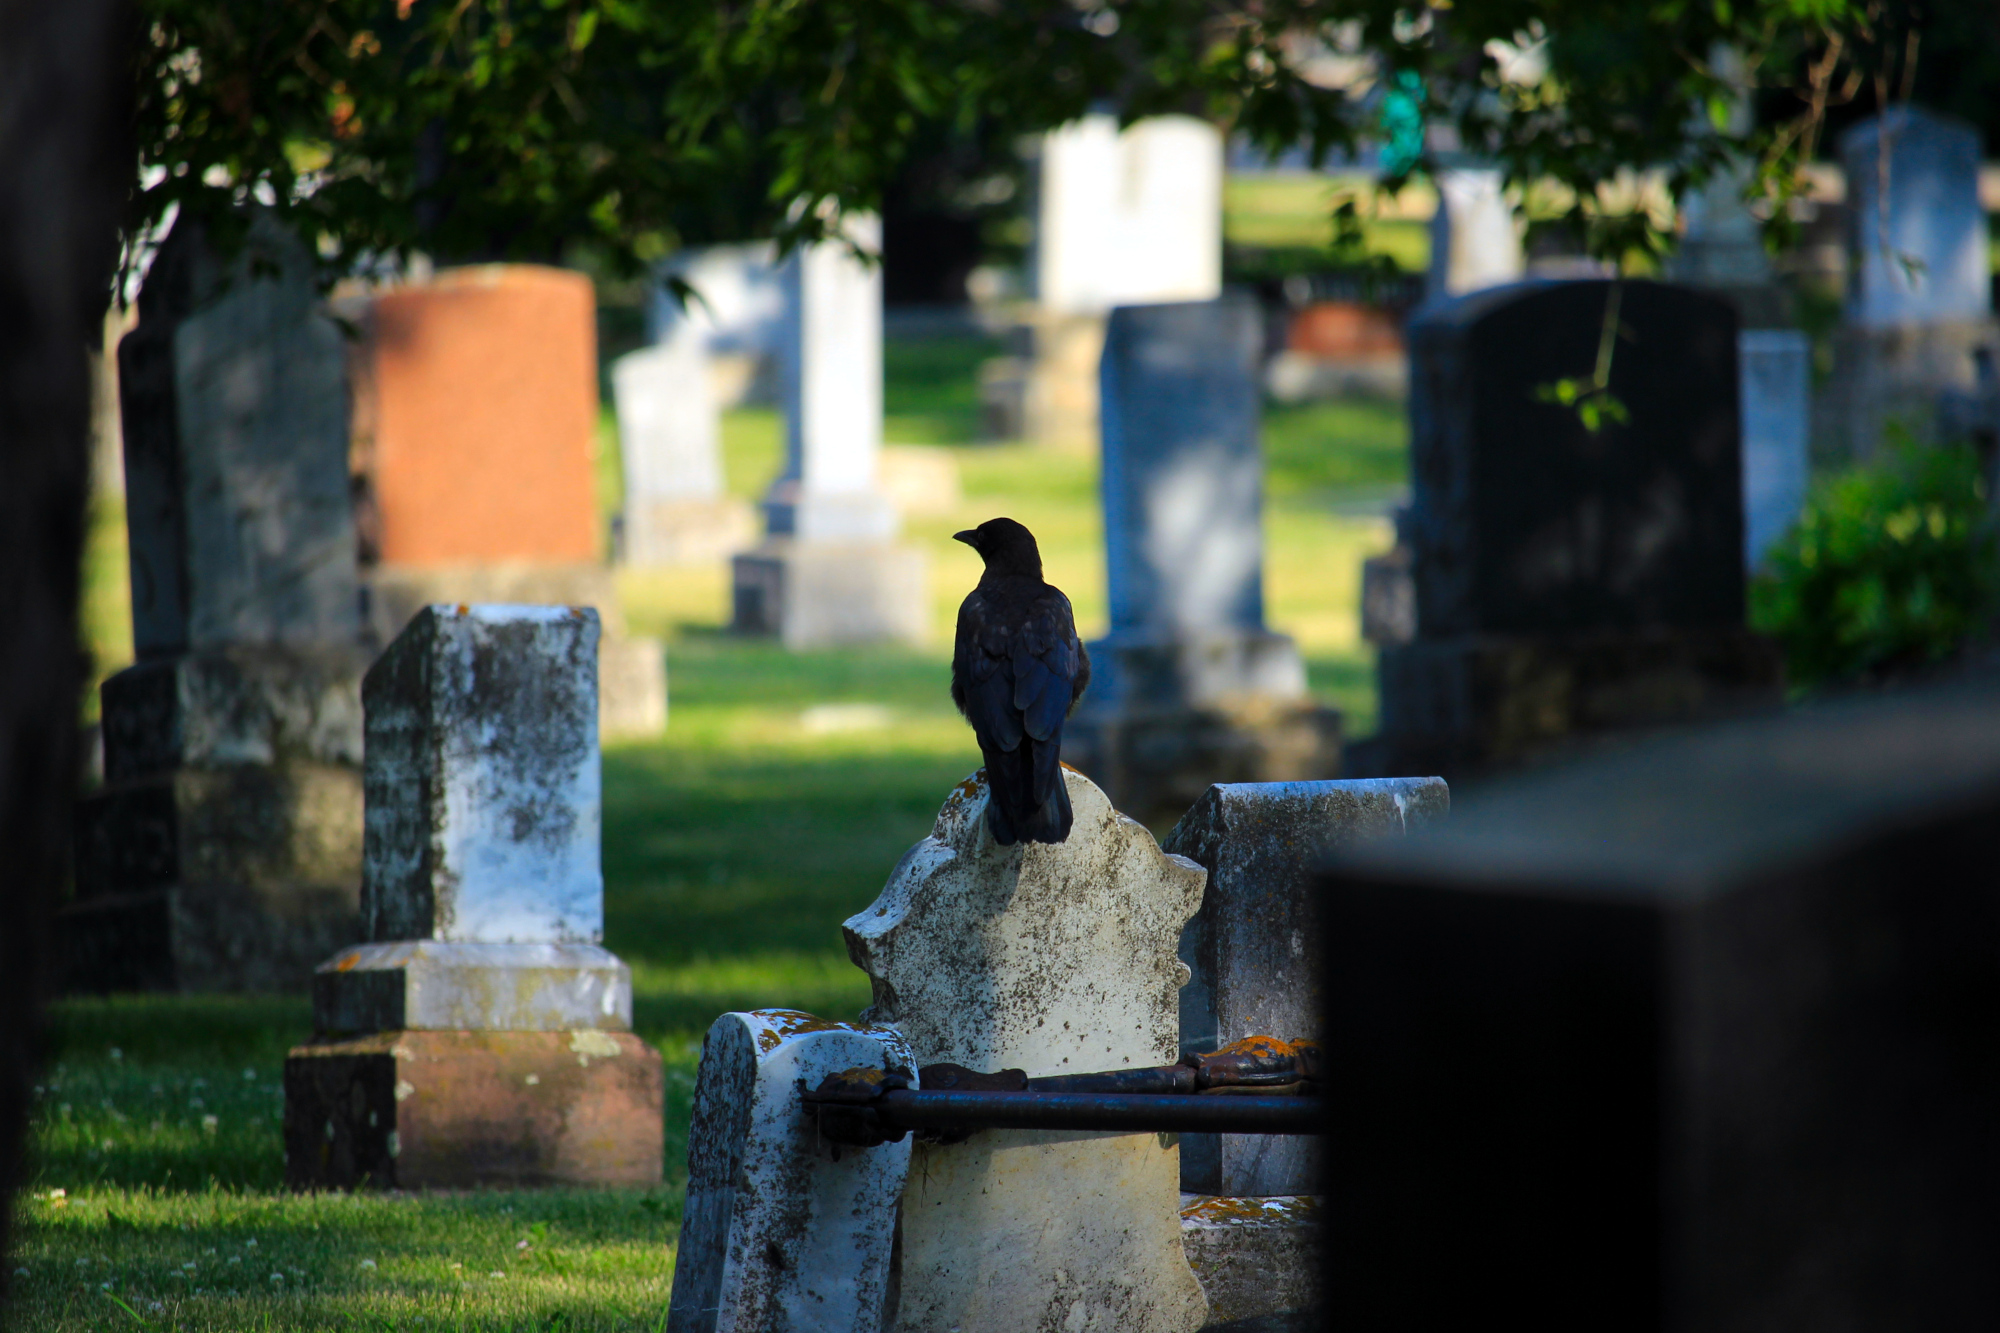 A crow perched on a headstone at the cemetery